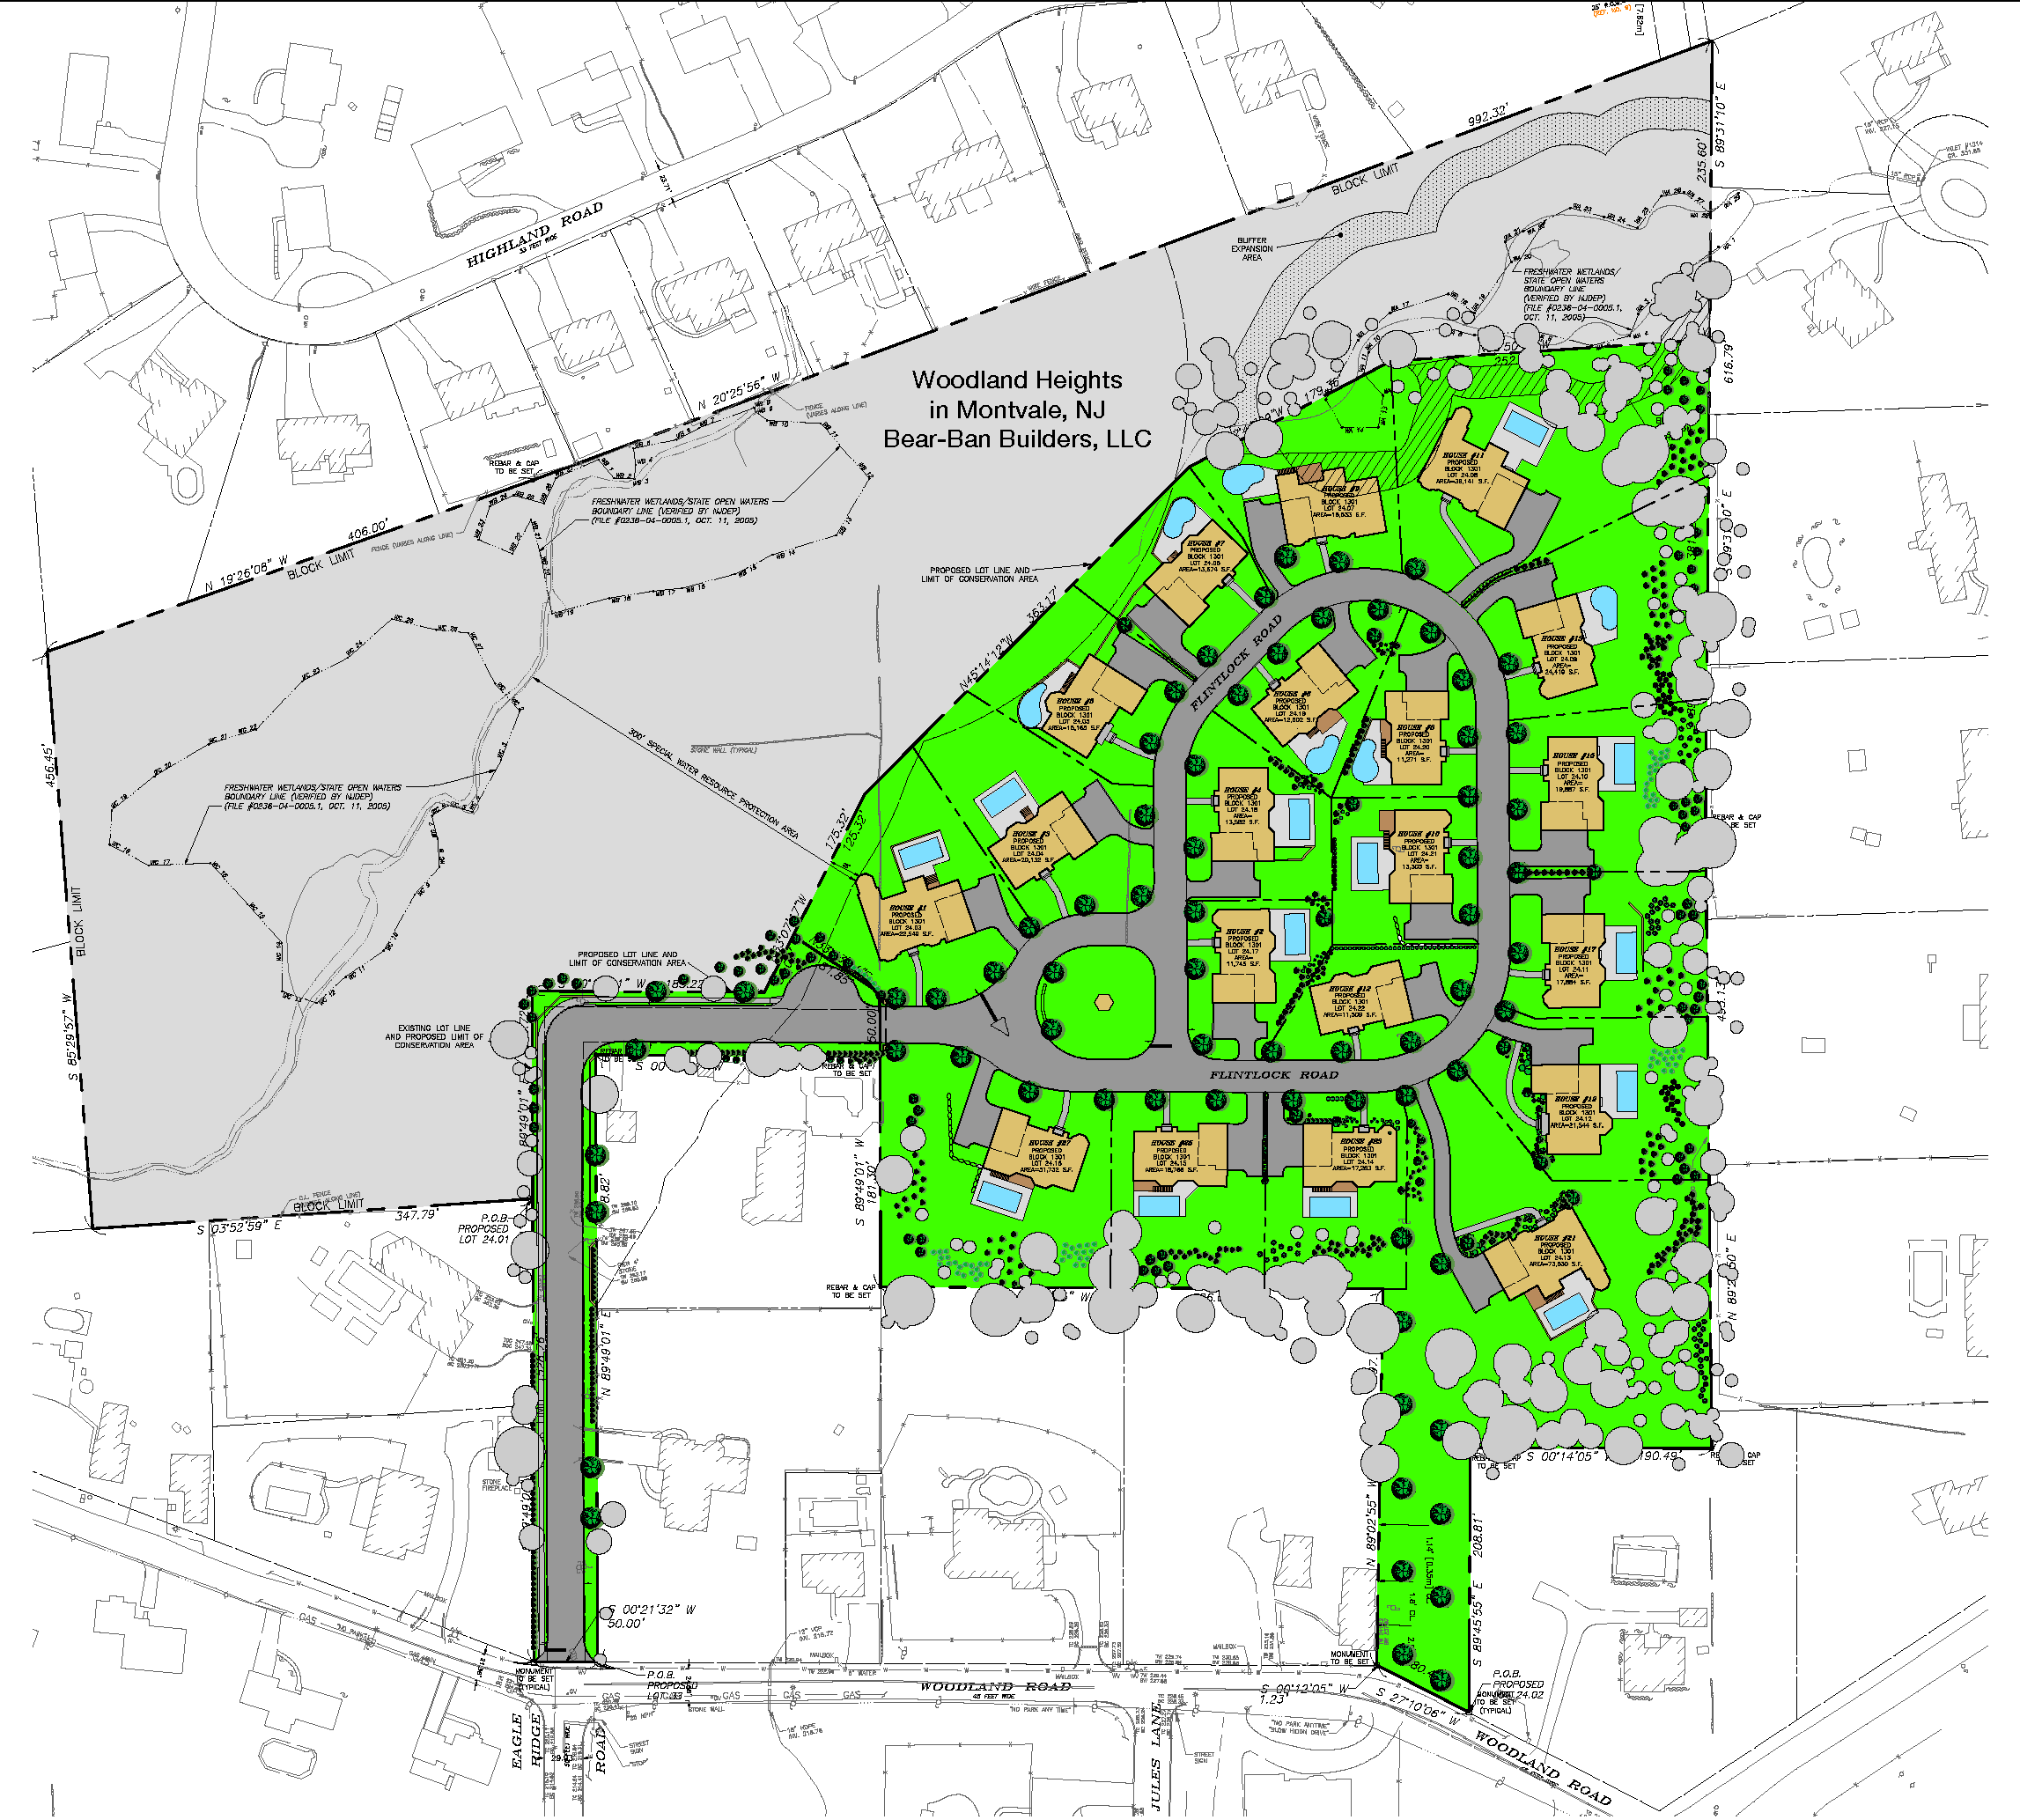 Site Layout of Woodland Heights Development in Montvale, NJ by Bear-Ban Builders, LLC